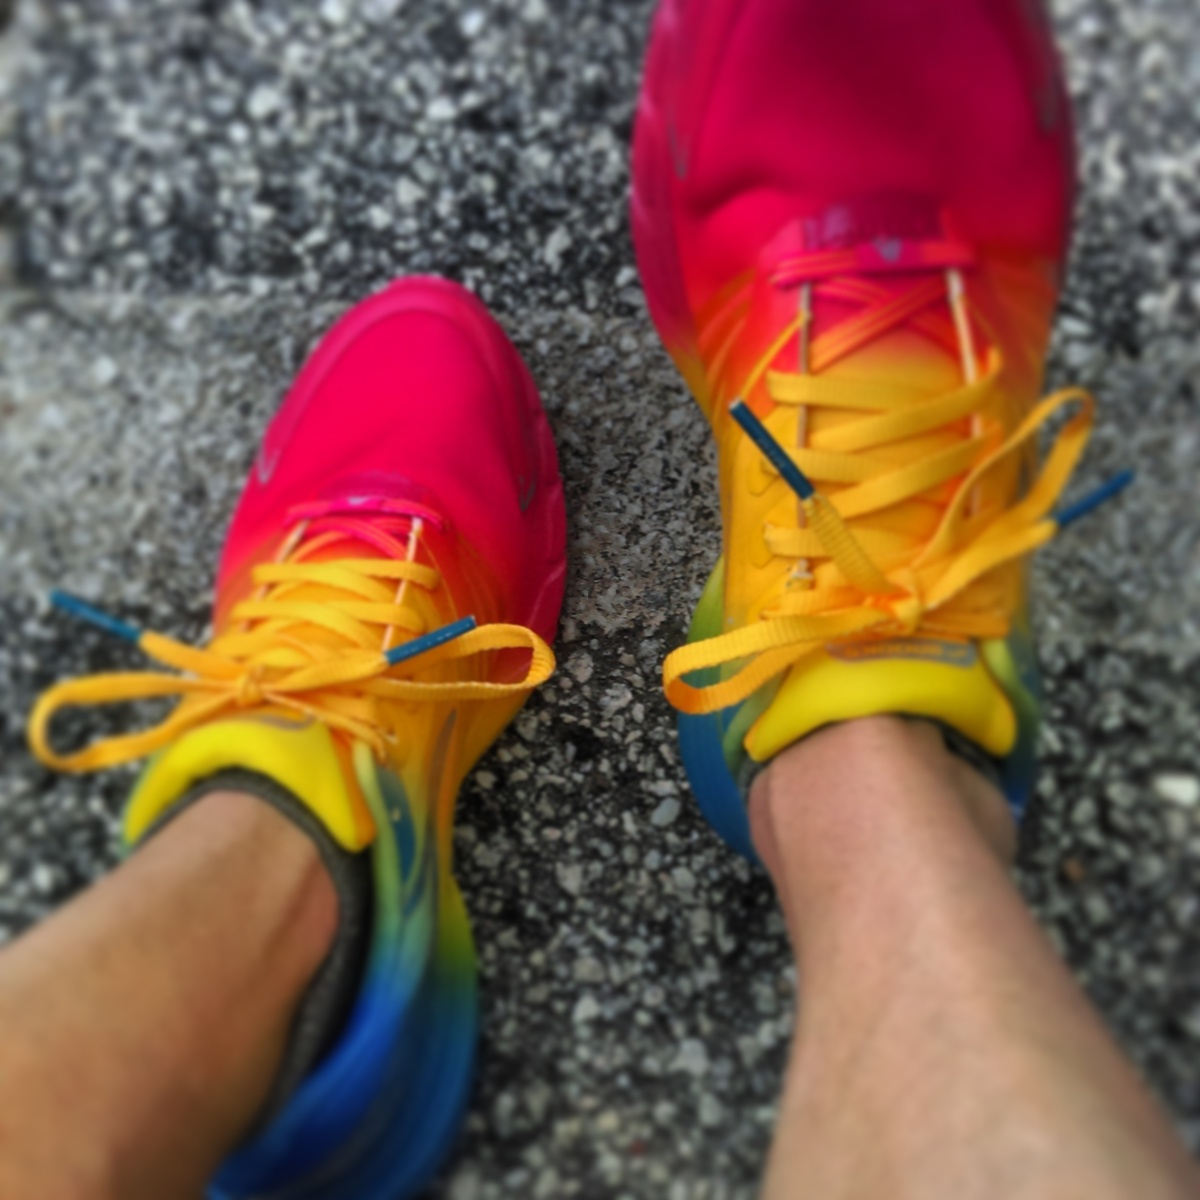 These make me feel like Rainbow Brite, but faster.